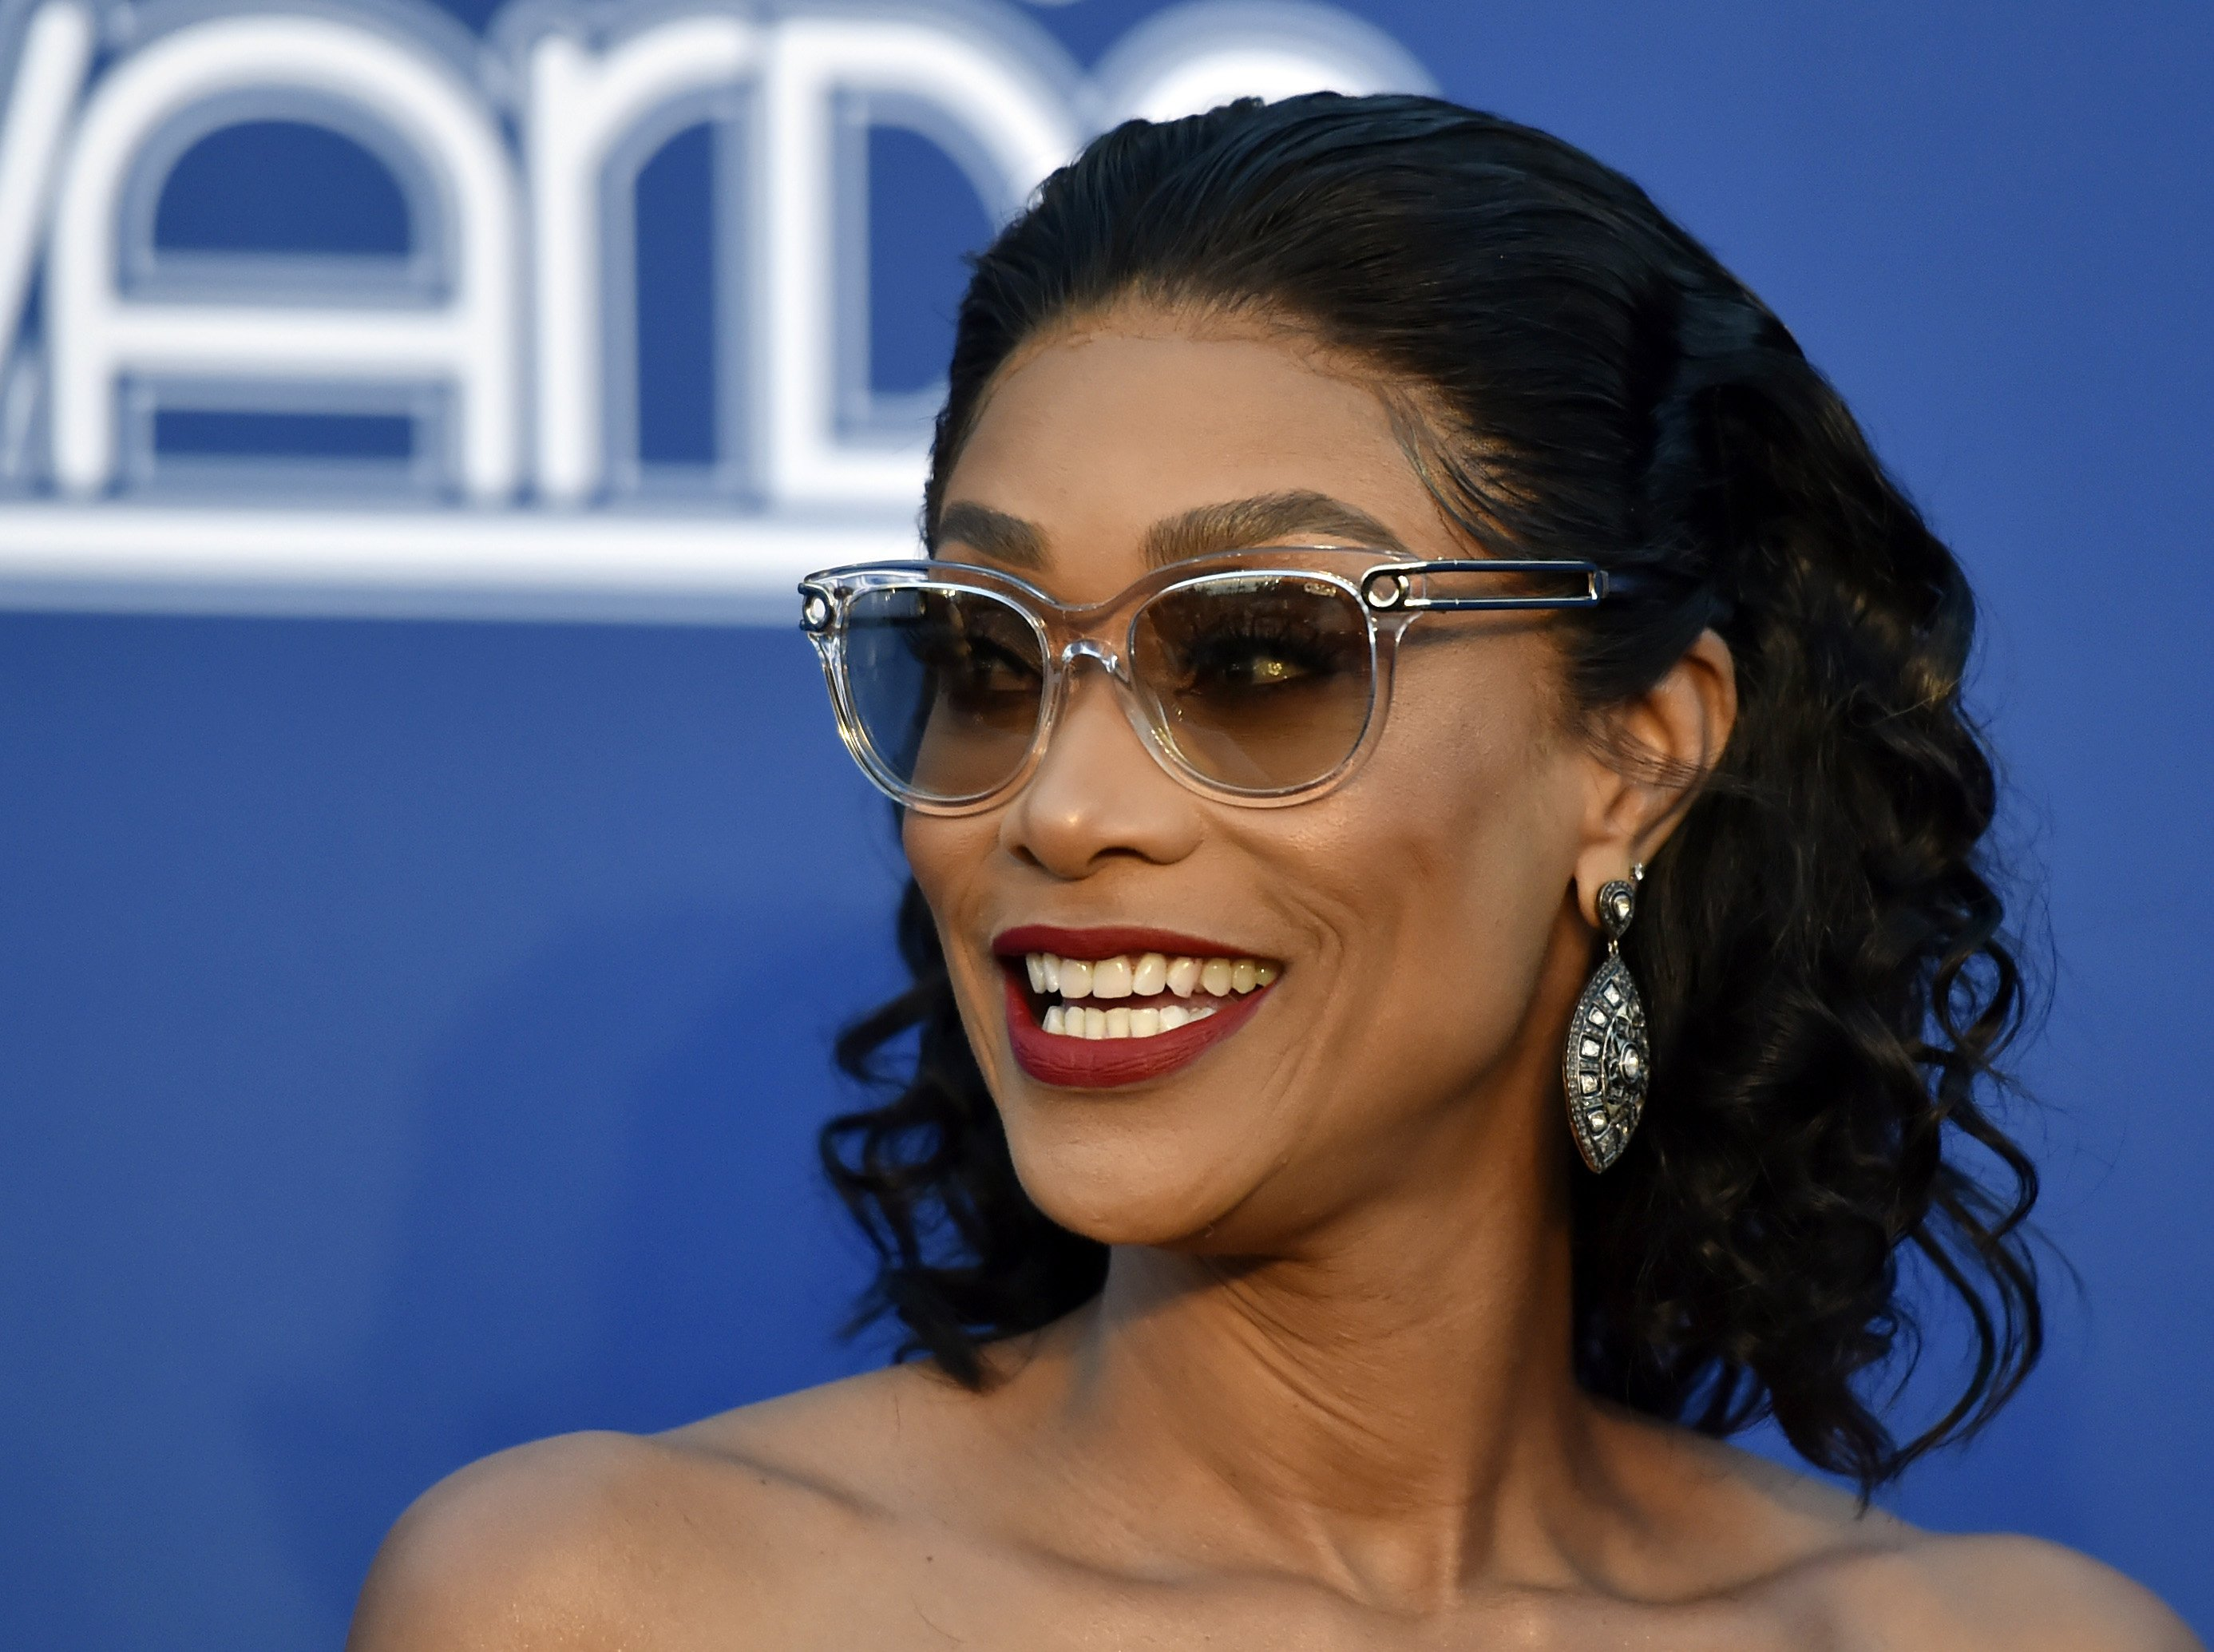 Tami Roman at the Soul Train Awards on Nov. 17, 2018 in Las Vegas, Nevada | Photo: Getty Images